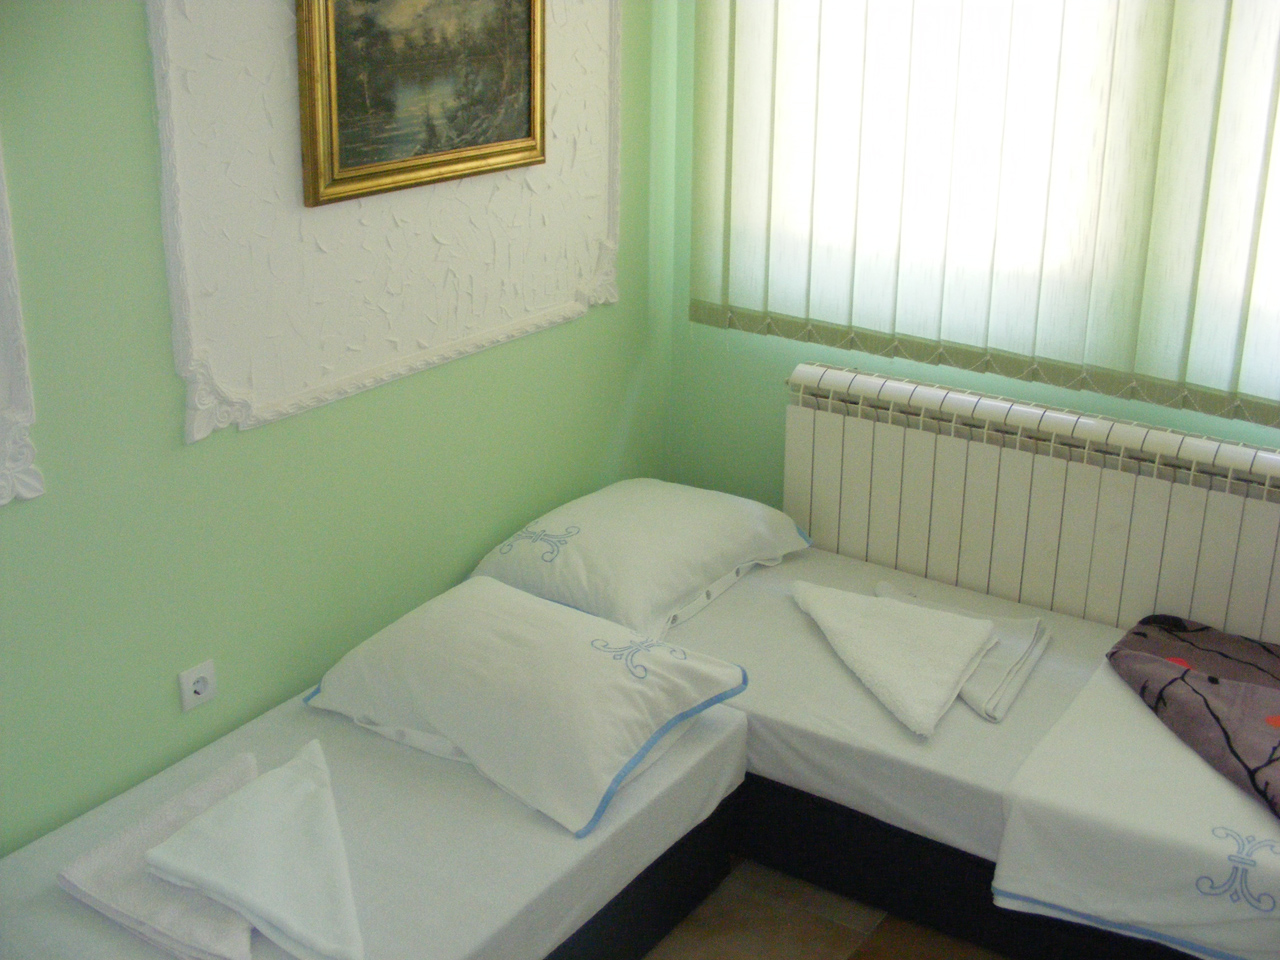 RESTAURANT WITH OVERNIGHT STAY MISS Restaurants for weddings Pancevo - Photo 6